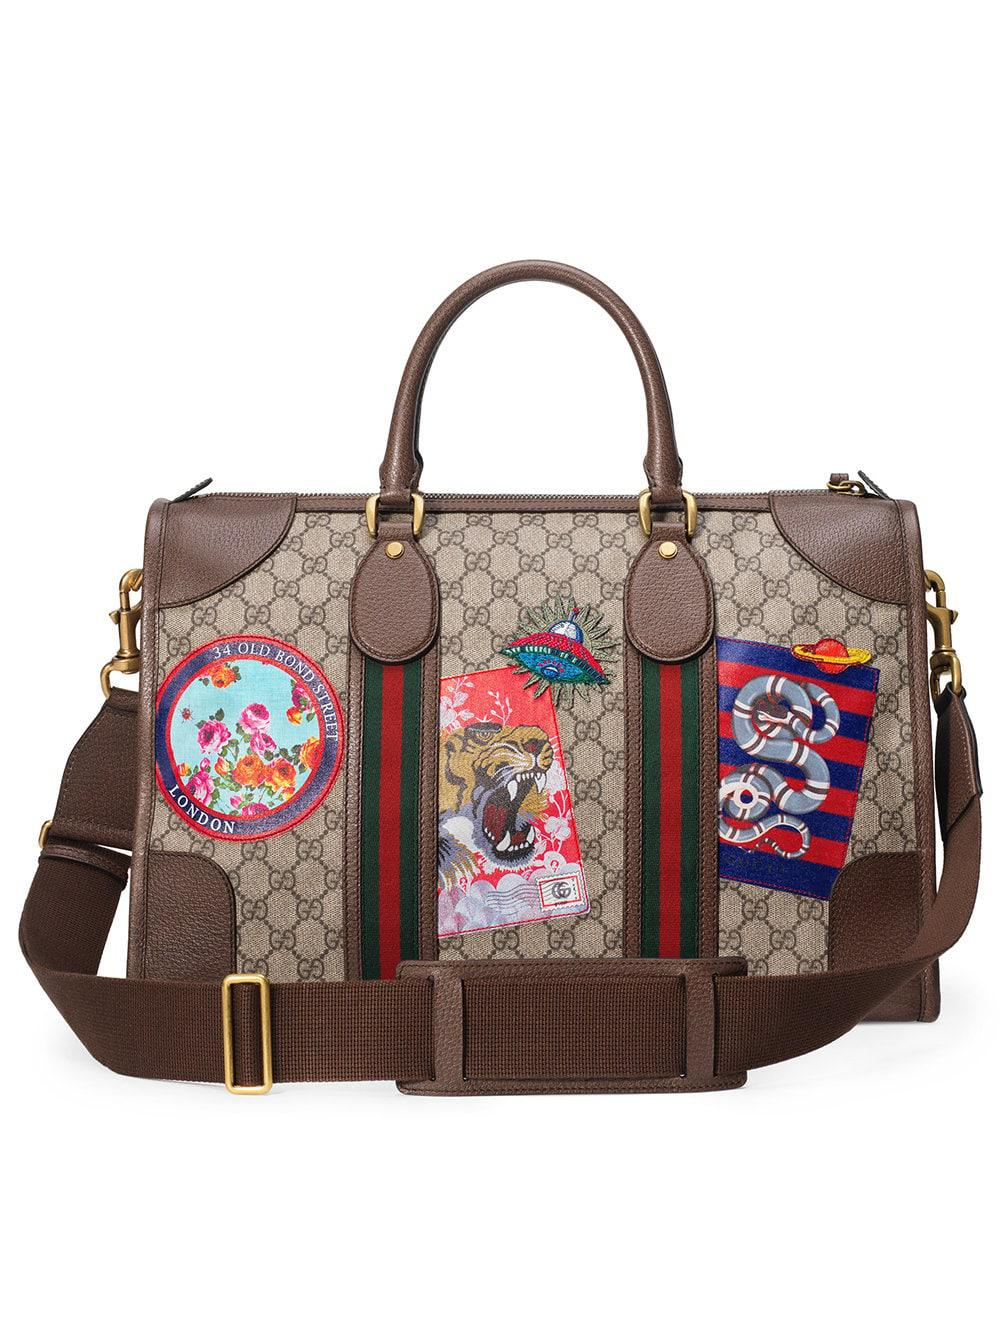 47add77ce4595c Gucci - Multicolor Leather Courrier GG Supreme Duffle Bag - Lyst. View  fullscreen